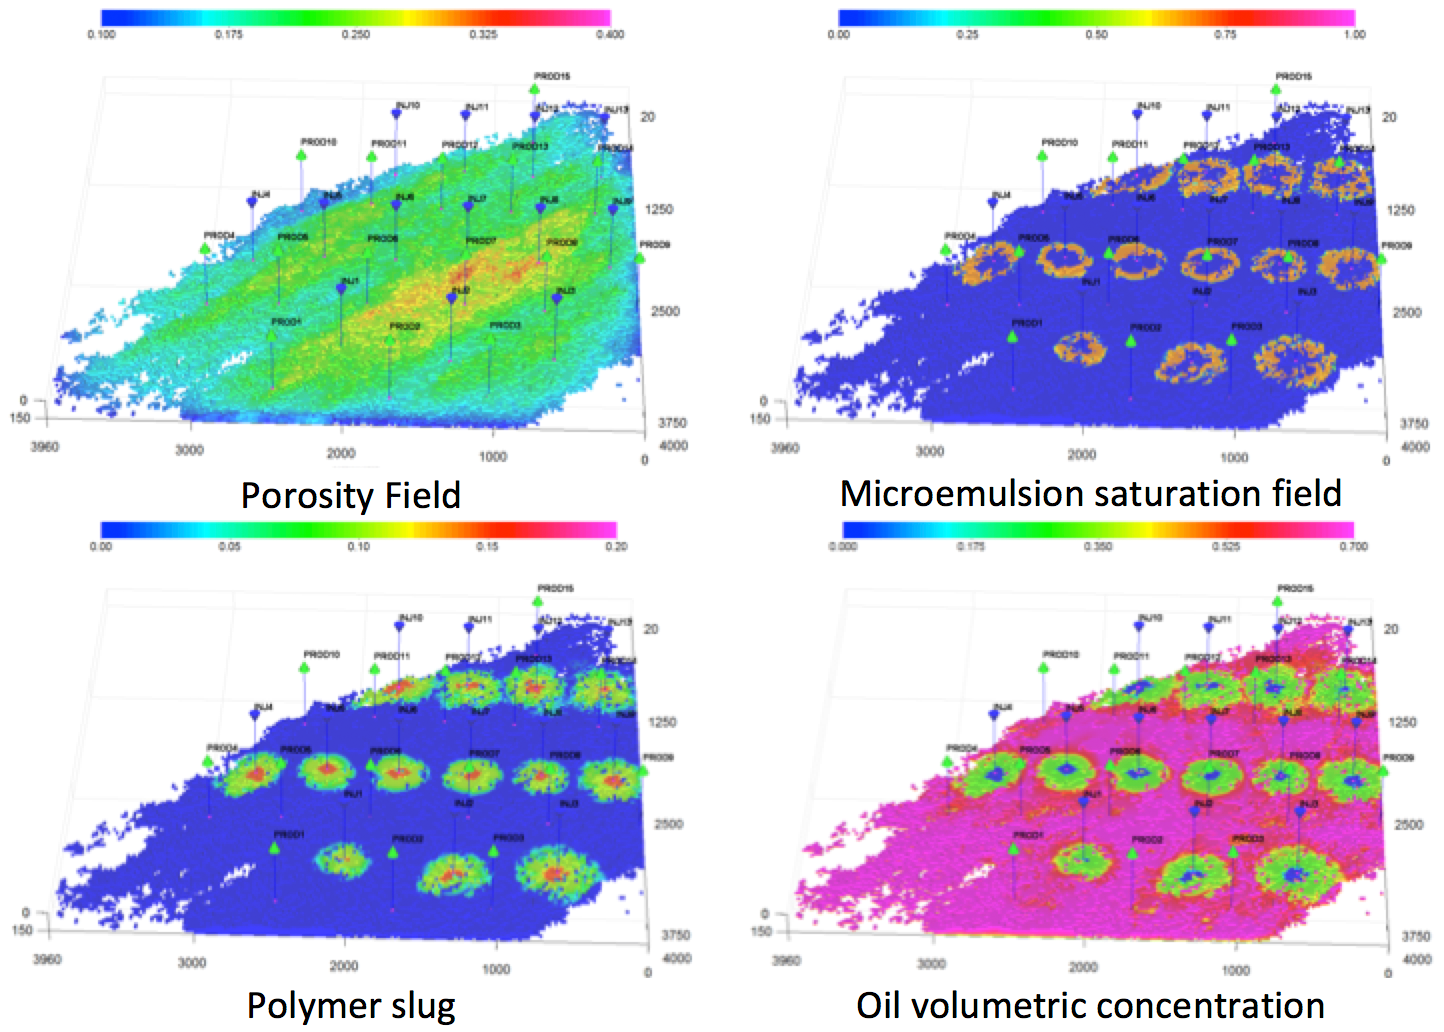 graphs of porosity field, microemulsion saturation field, polymer slug, oil volumetric concentration